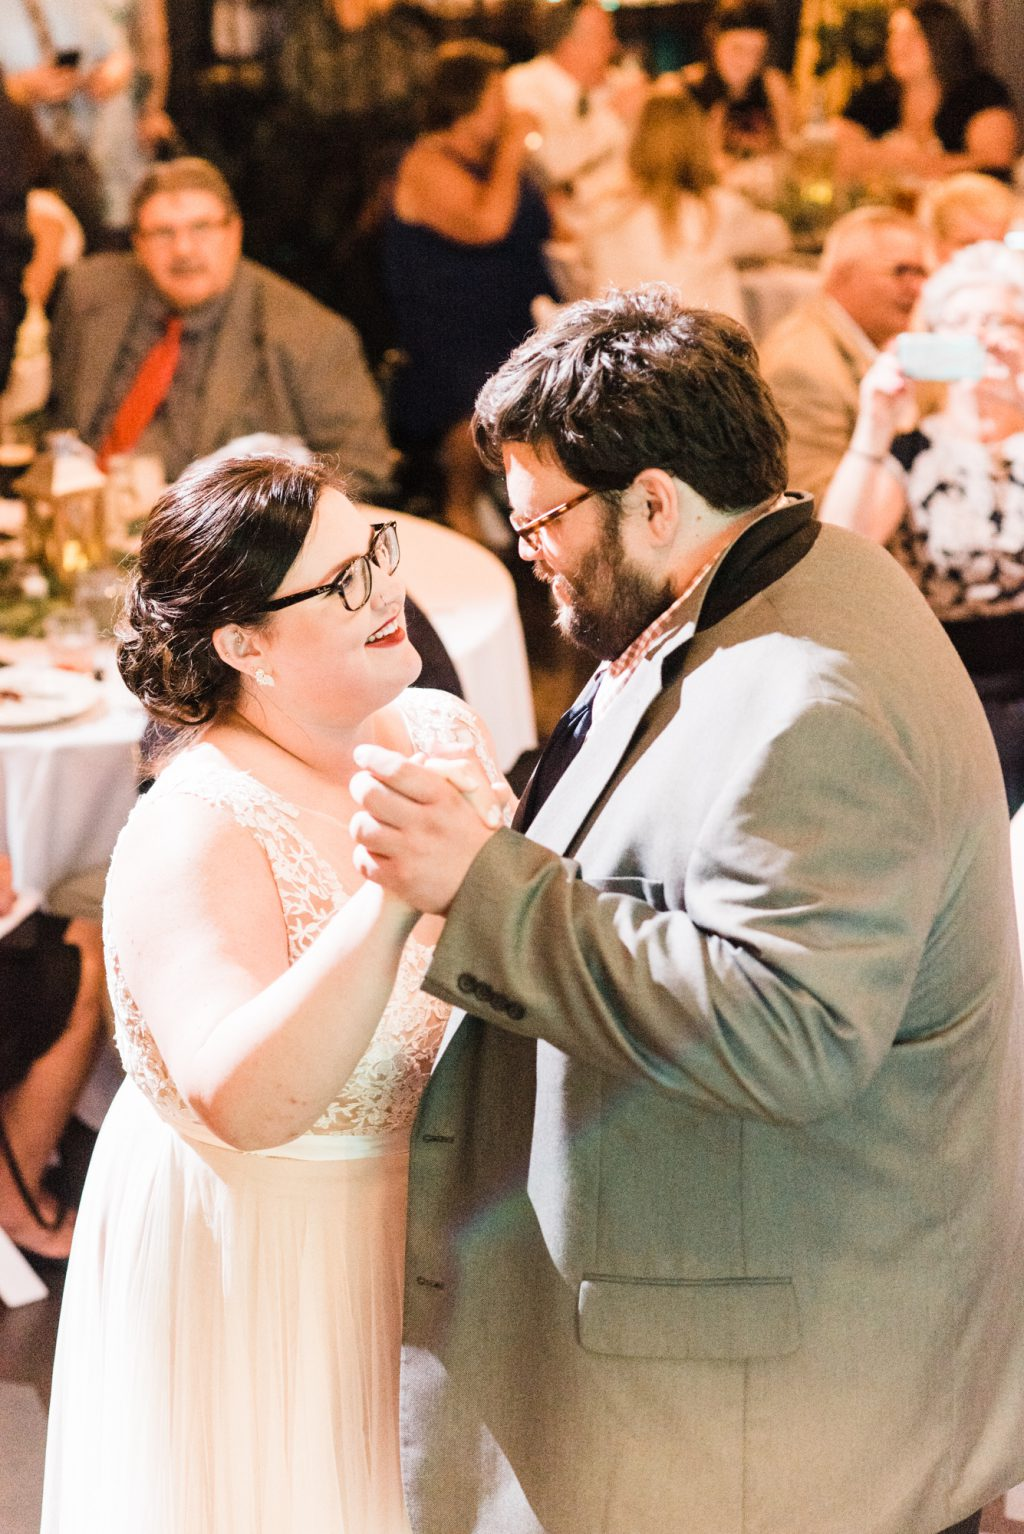 haley-richter-photo-west-chester-summer-wedding-boxcar-brewery-173